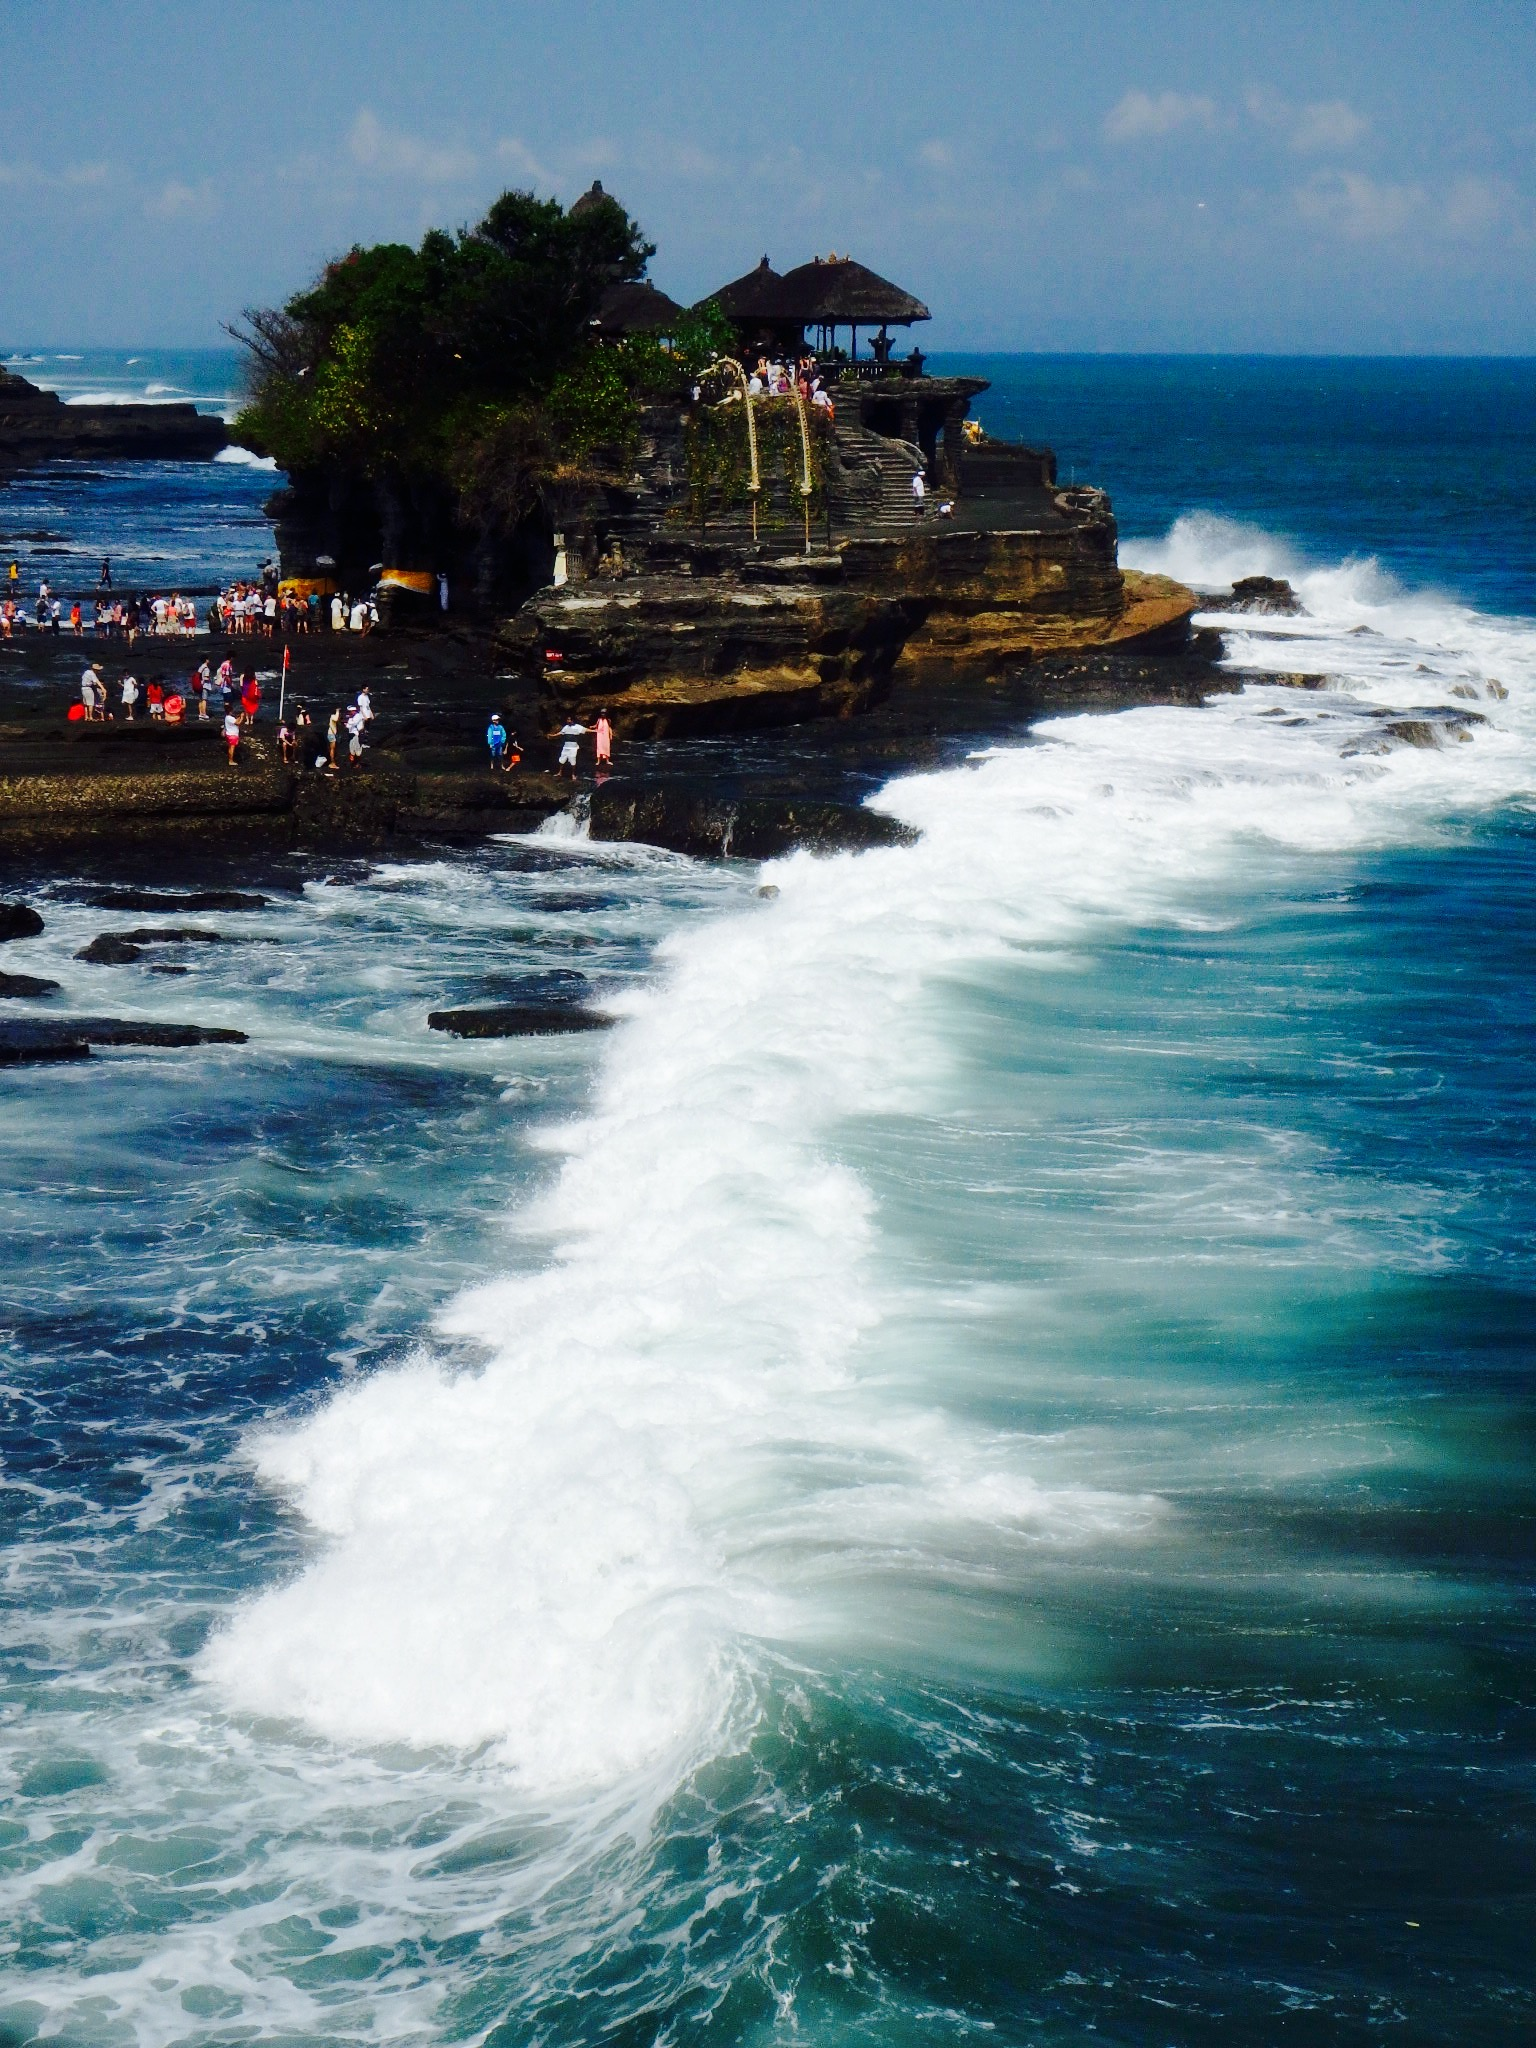 Holy Snakes and a rough surf keep the Tanah Lot Temple free of evil spirits.